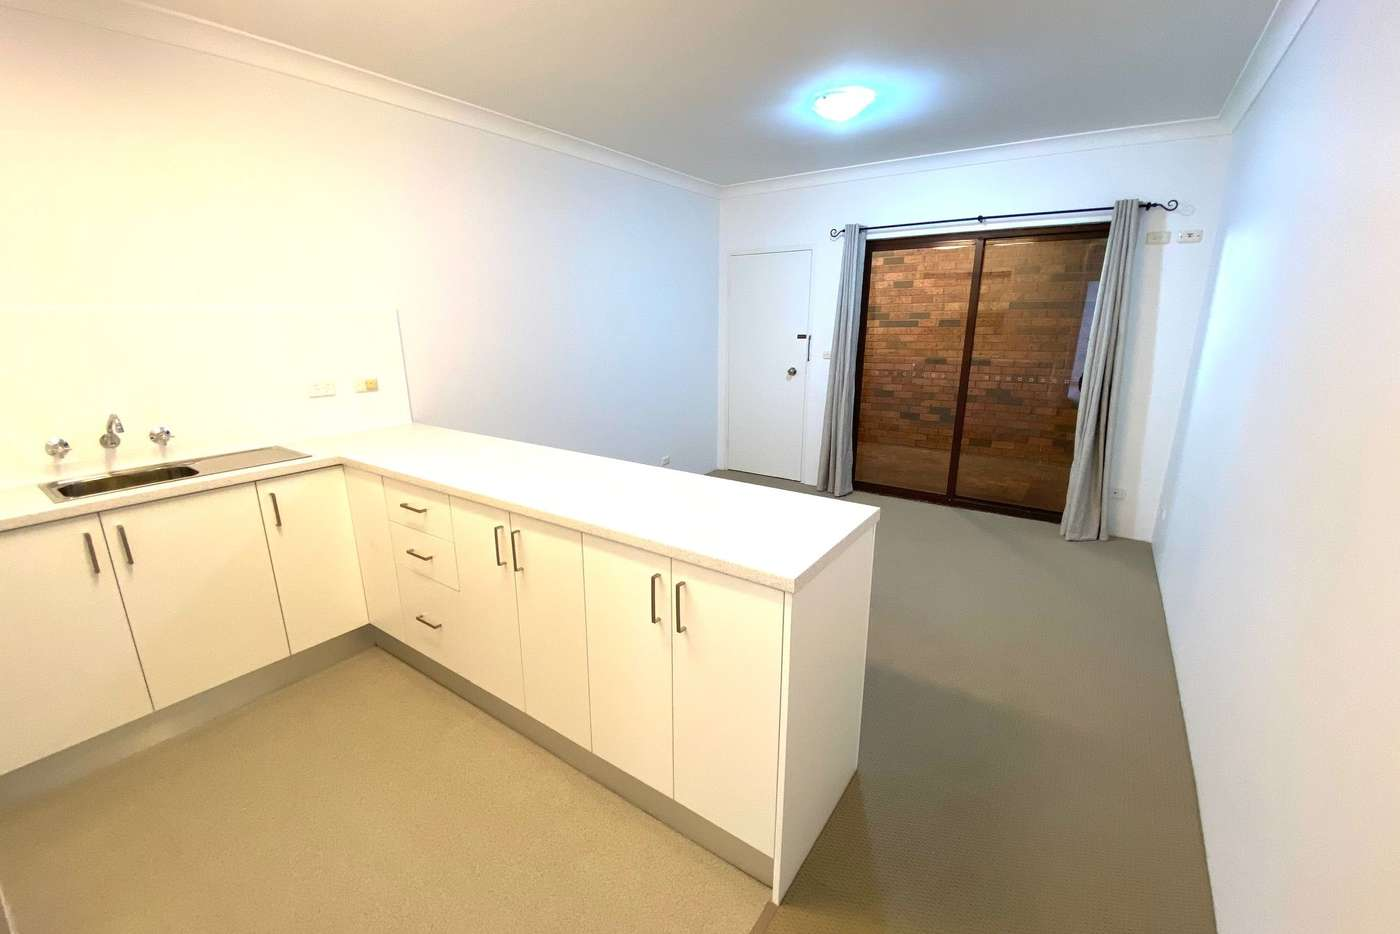 Sixth view of Homely apartment listing, 1/164 Campbell Parade, Bondi Beach NSW 2026